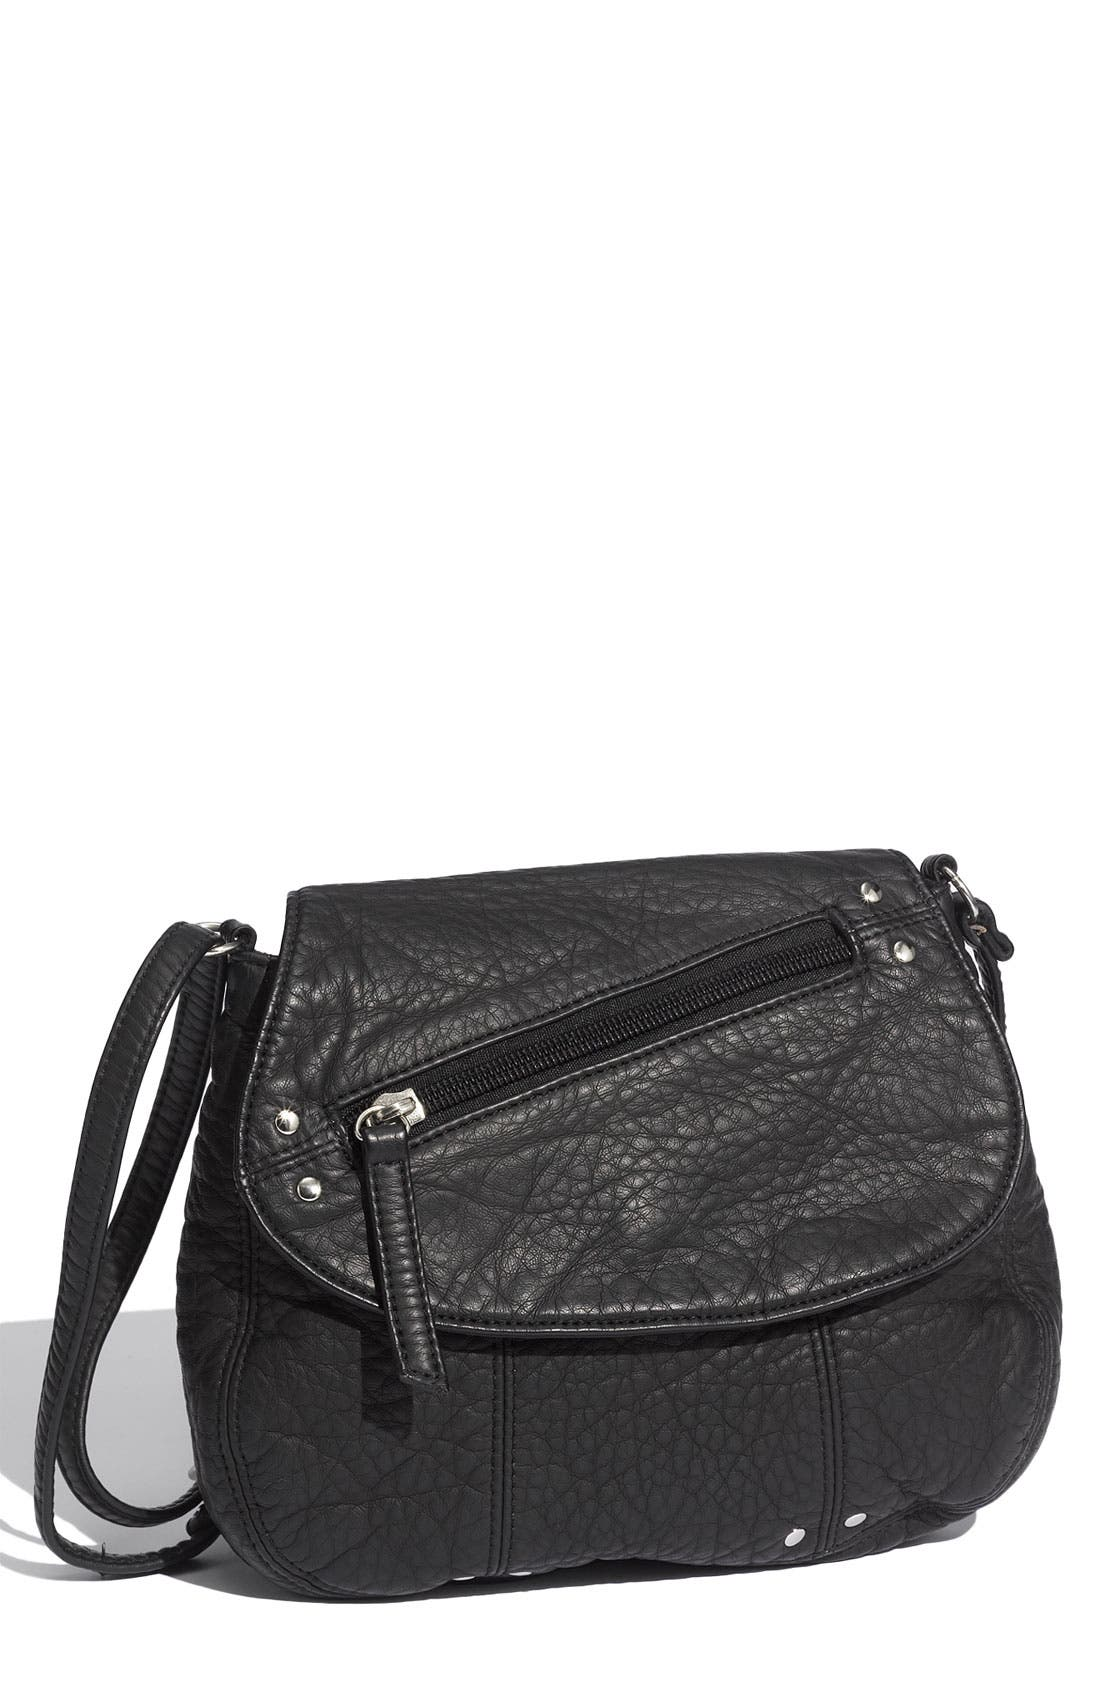 Small Crossbody Bag,                             Main thumbnail 1, color,                             001